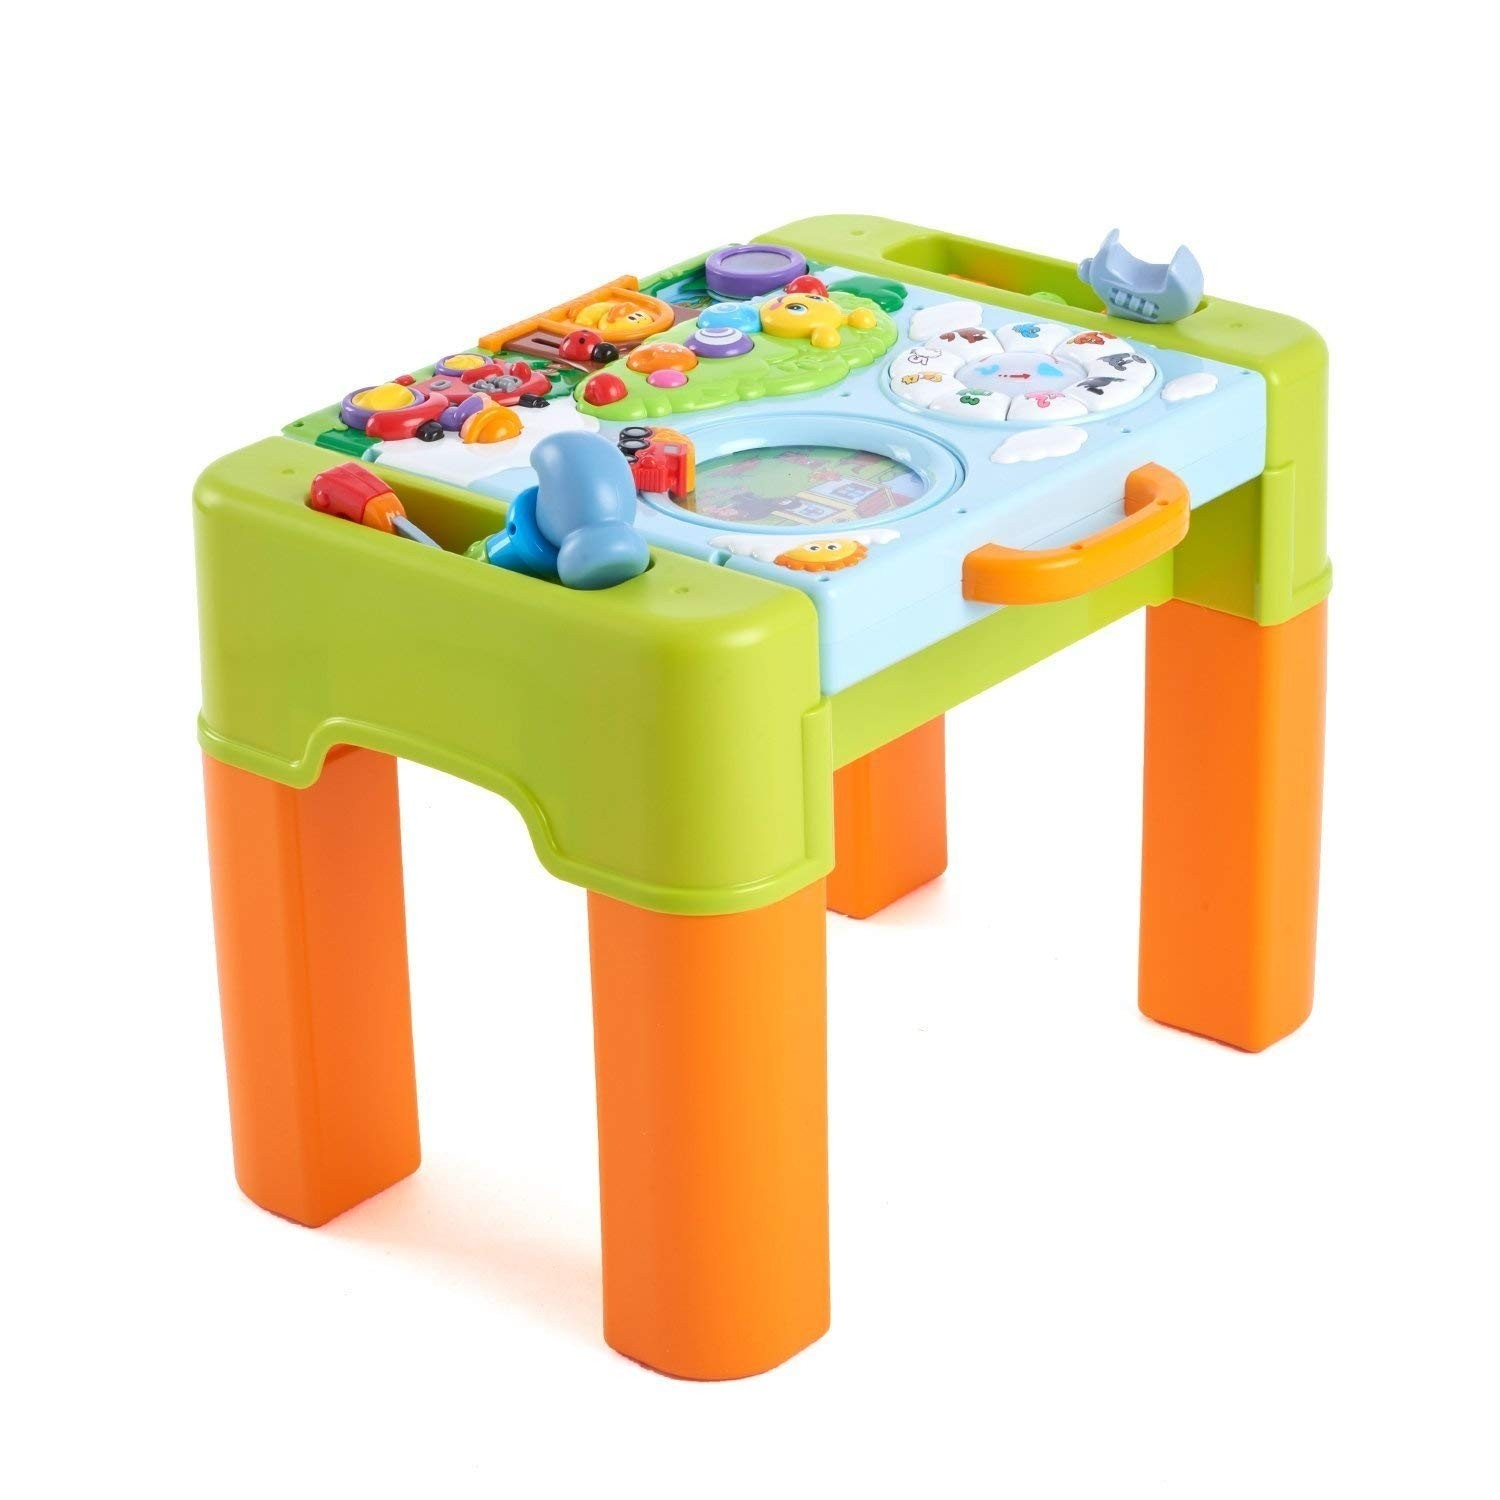 6 In 1 Educational Learning Activity Desk